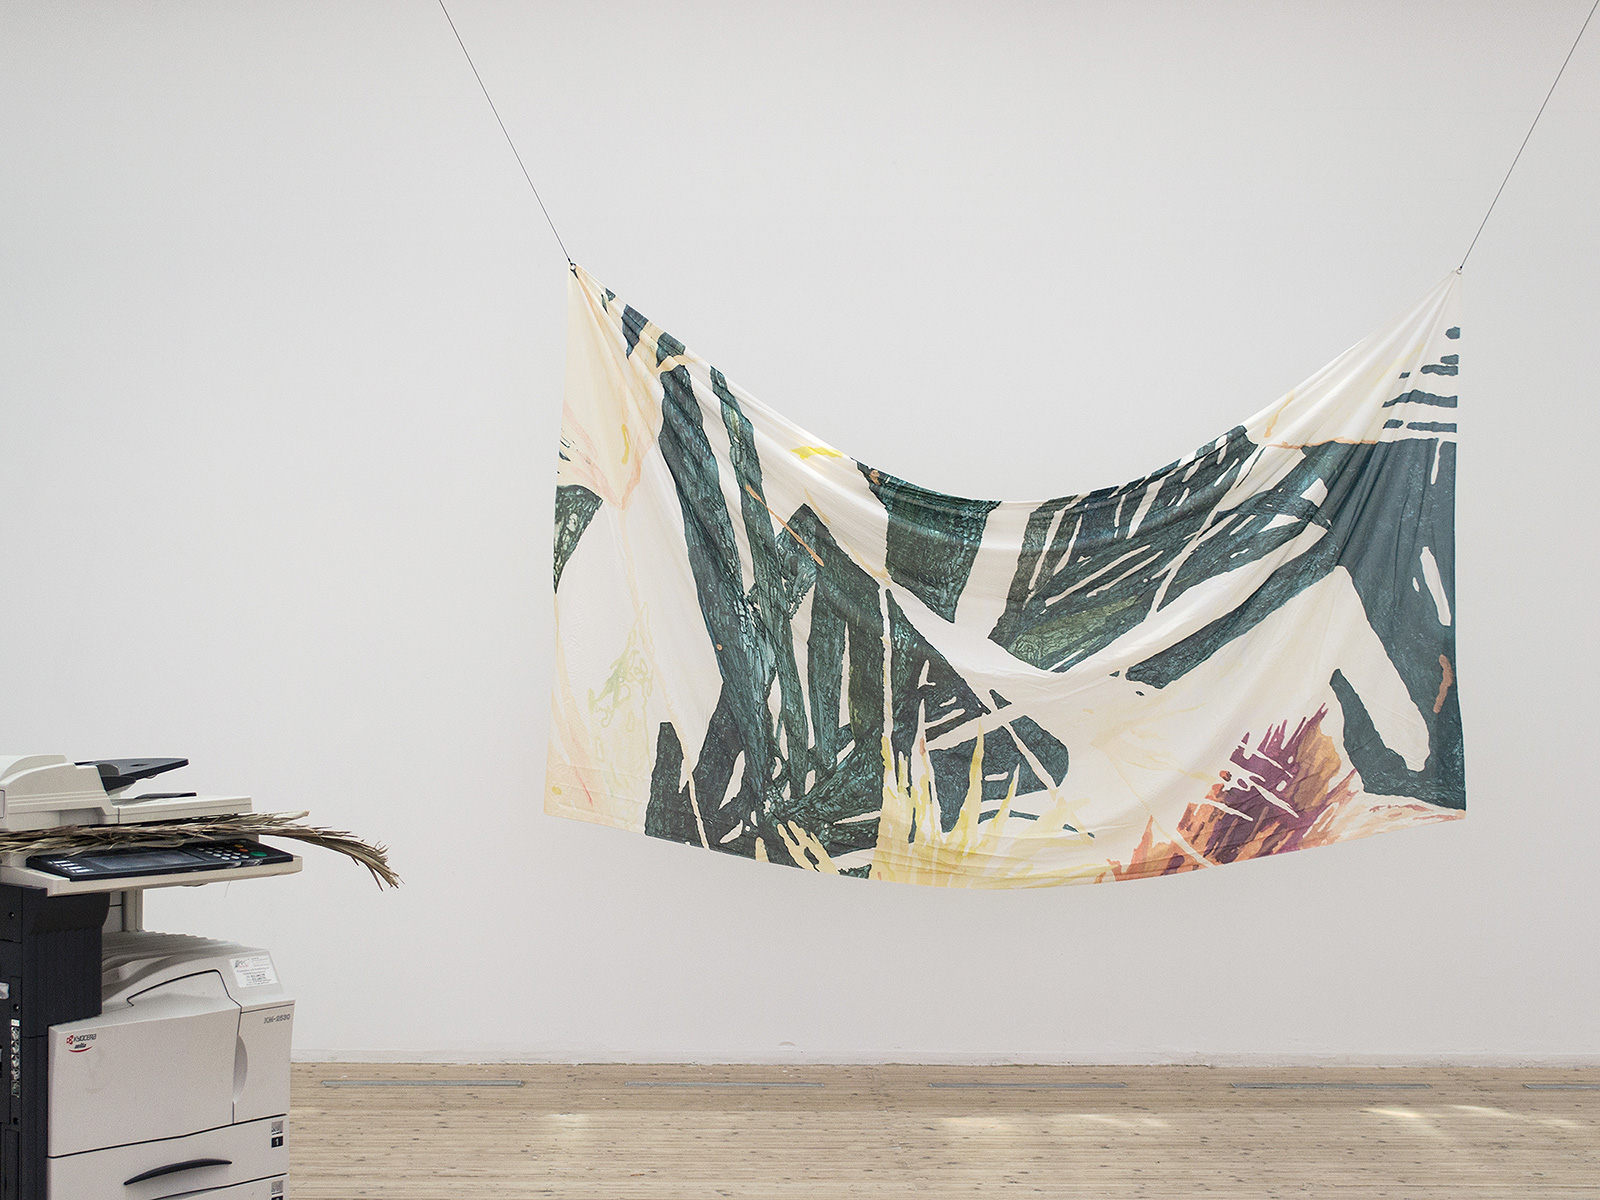 Copycat Underdog (2013), at Malmö Konsthall, Malmö, Sweden. Installation view. The Palm (1912) (2012), Still Life 250 x 140 cm, print on cotton.